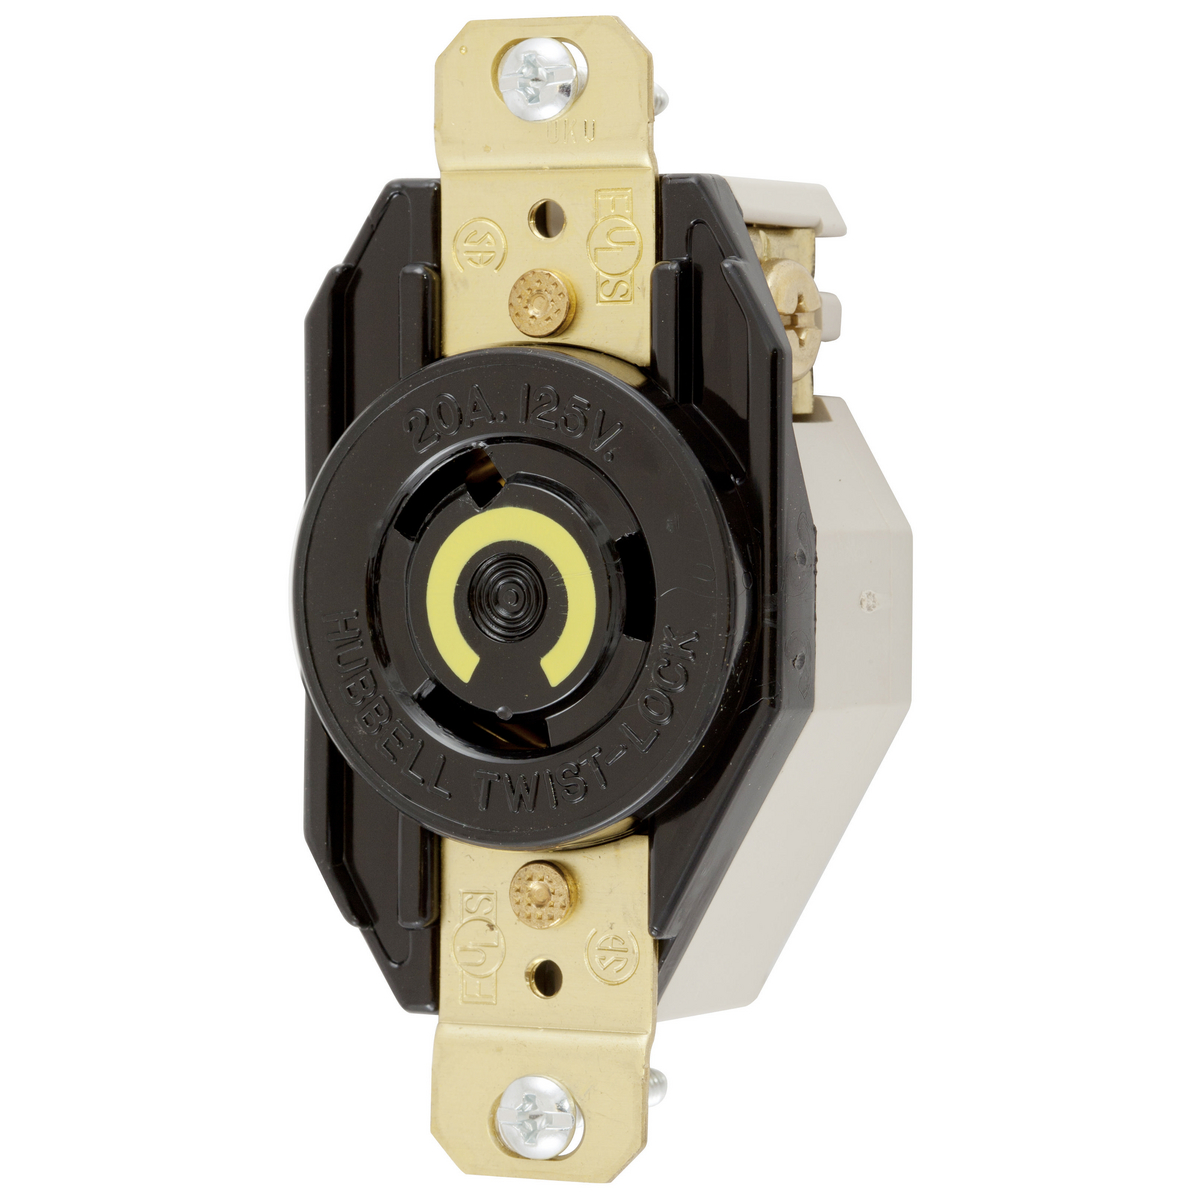 HUBBELL 125V 20A TWIST-LOCK RECEPTACLE With Box And Cover